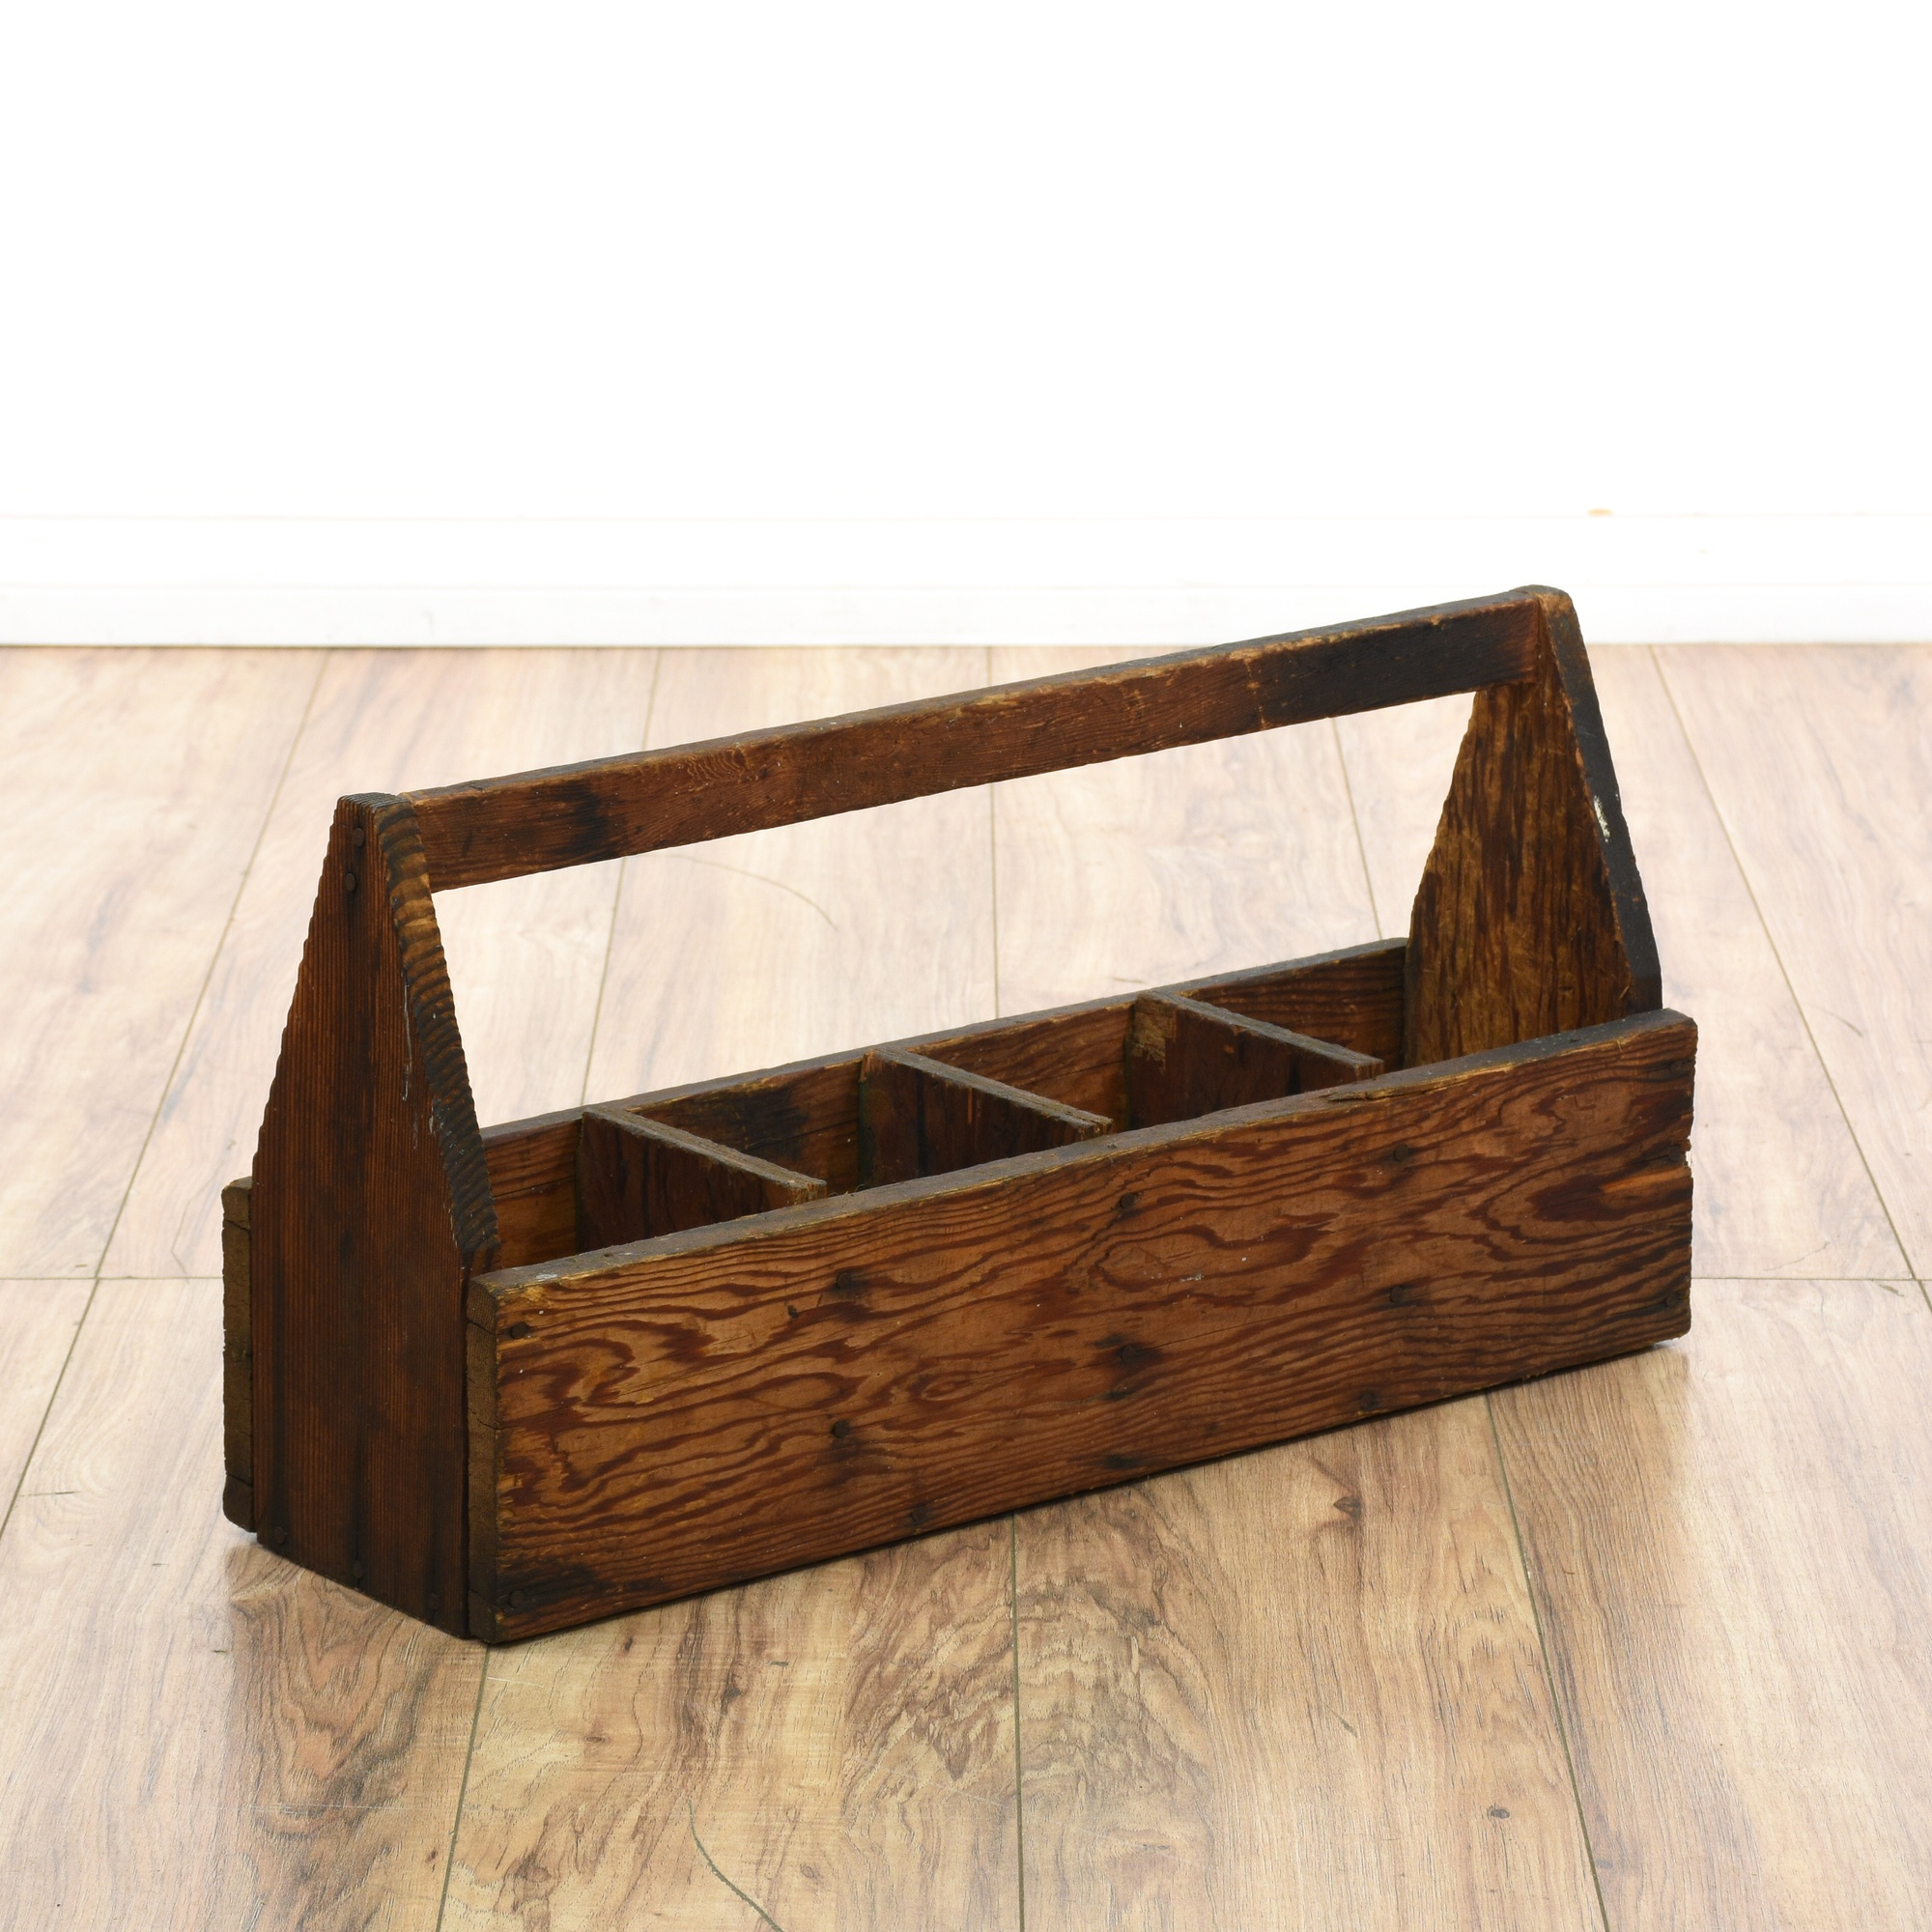 Basket Making Supplies San Diego : Rustic vintage stained pine tool box loveseat